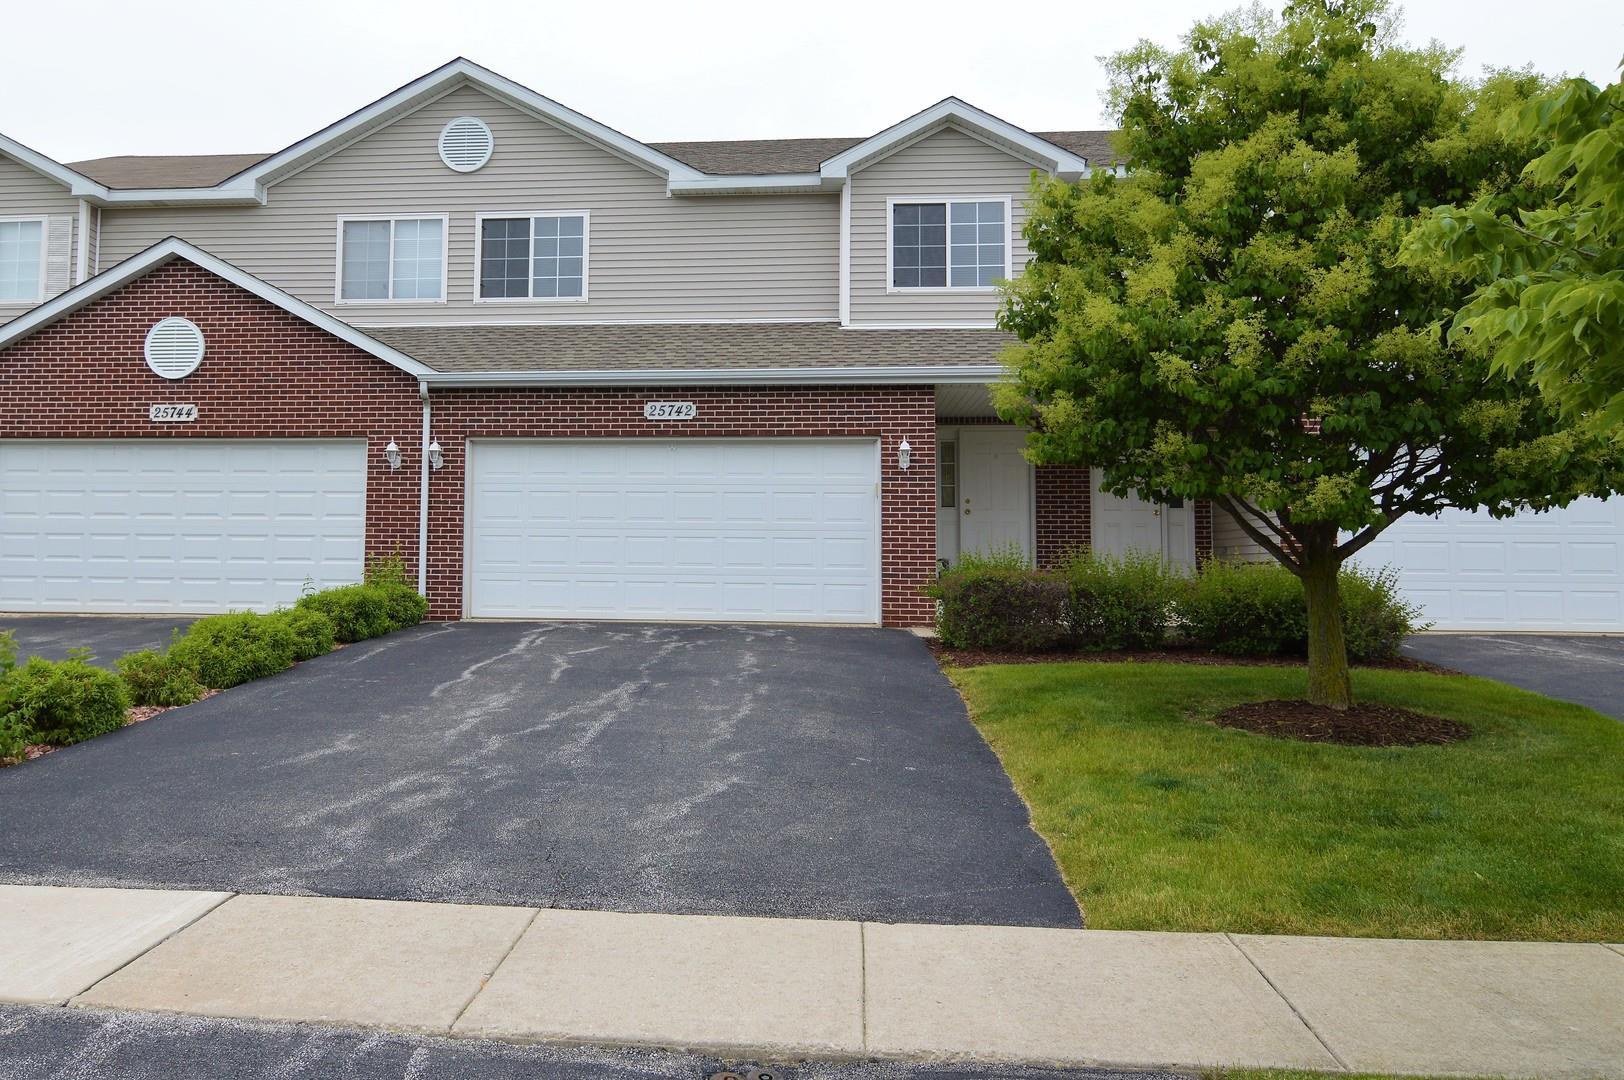 25742 S Red Stable Lane, Channahon, IL 60410 - #: 11104536